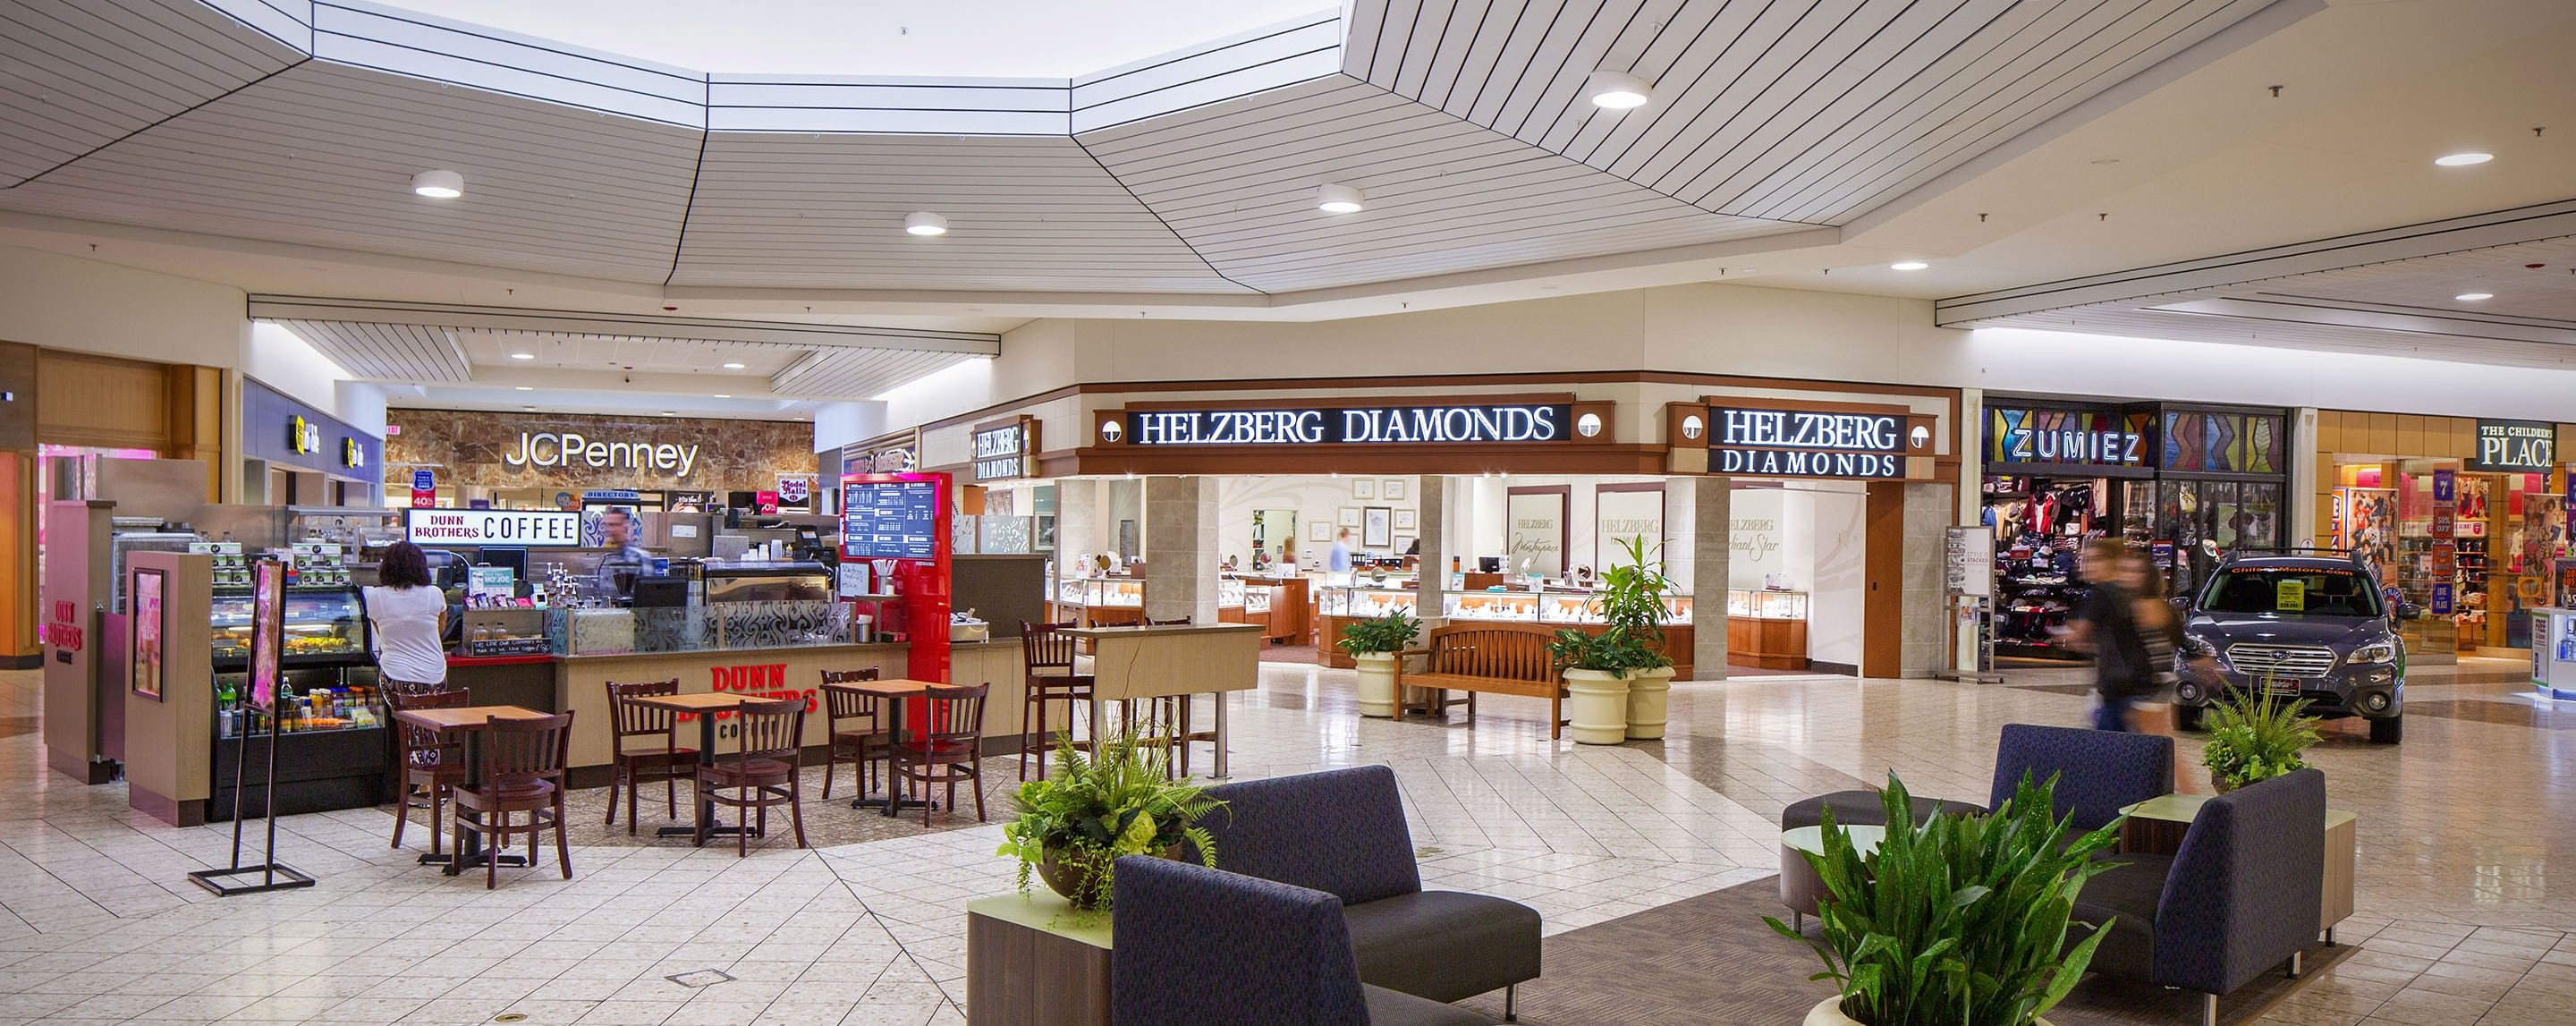 In a OakWood Mall indoor common area, a coffee kiosk offers a seating area for shoppers to relax.